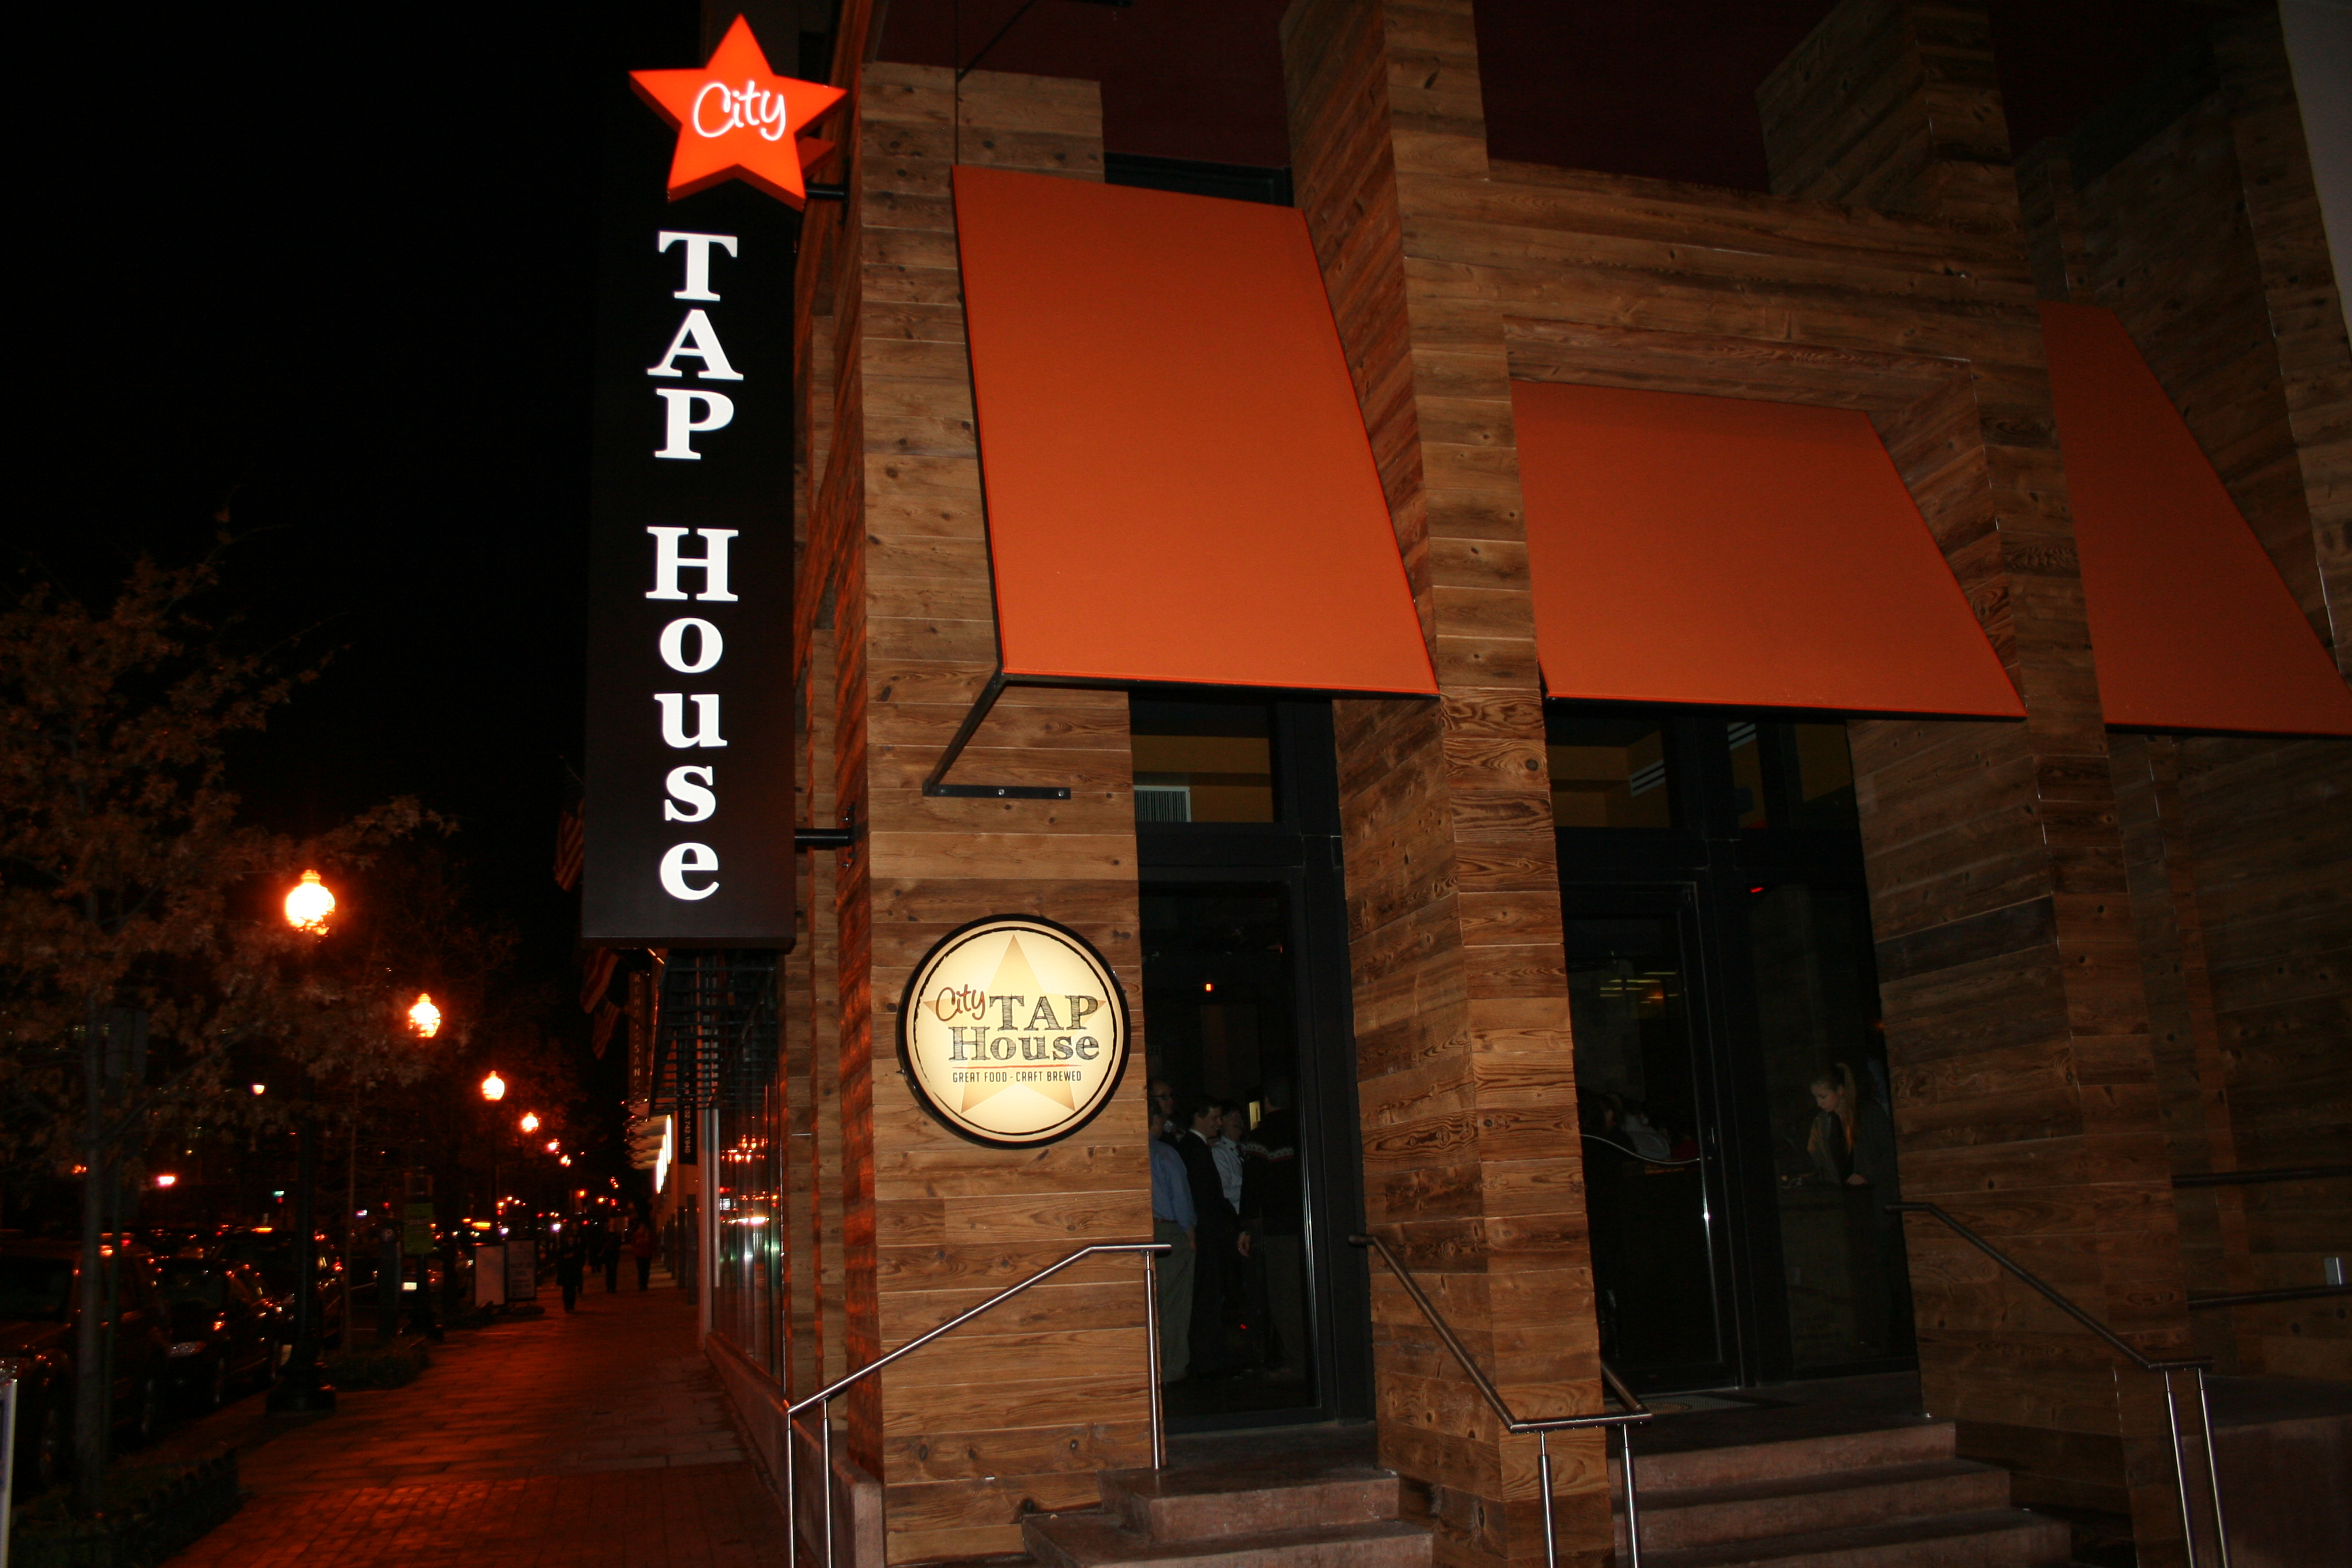 Great City Tap House Opened In December In The Old 901 Restaurant U0026 Bar Space. (